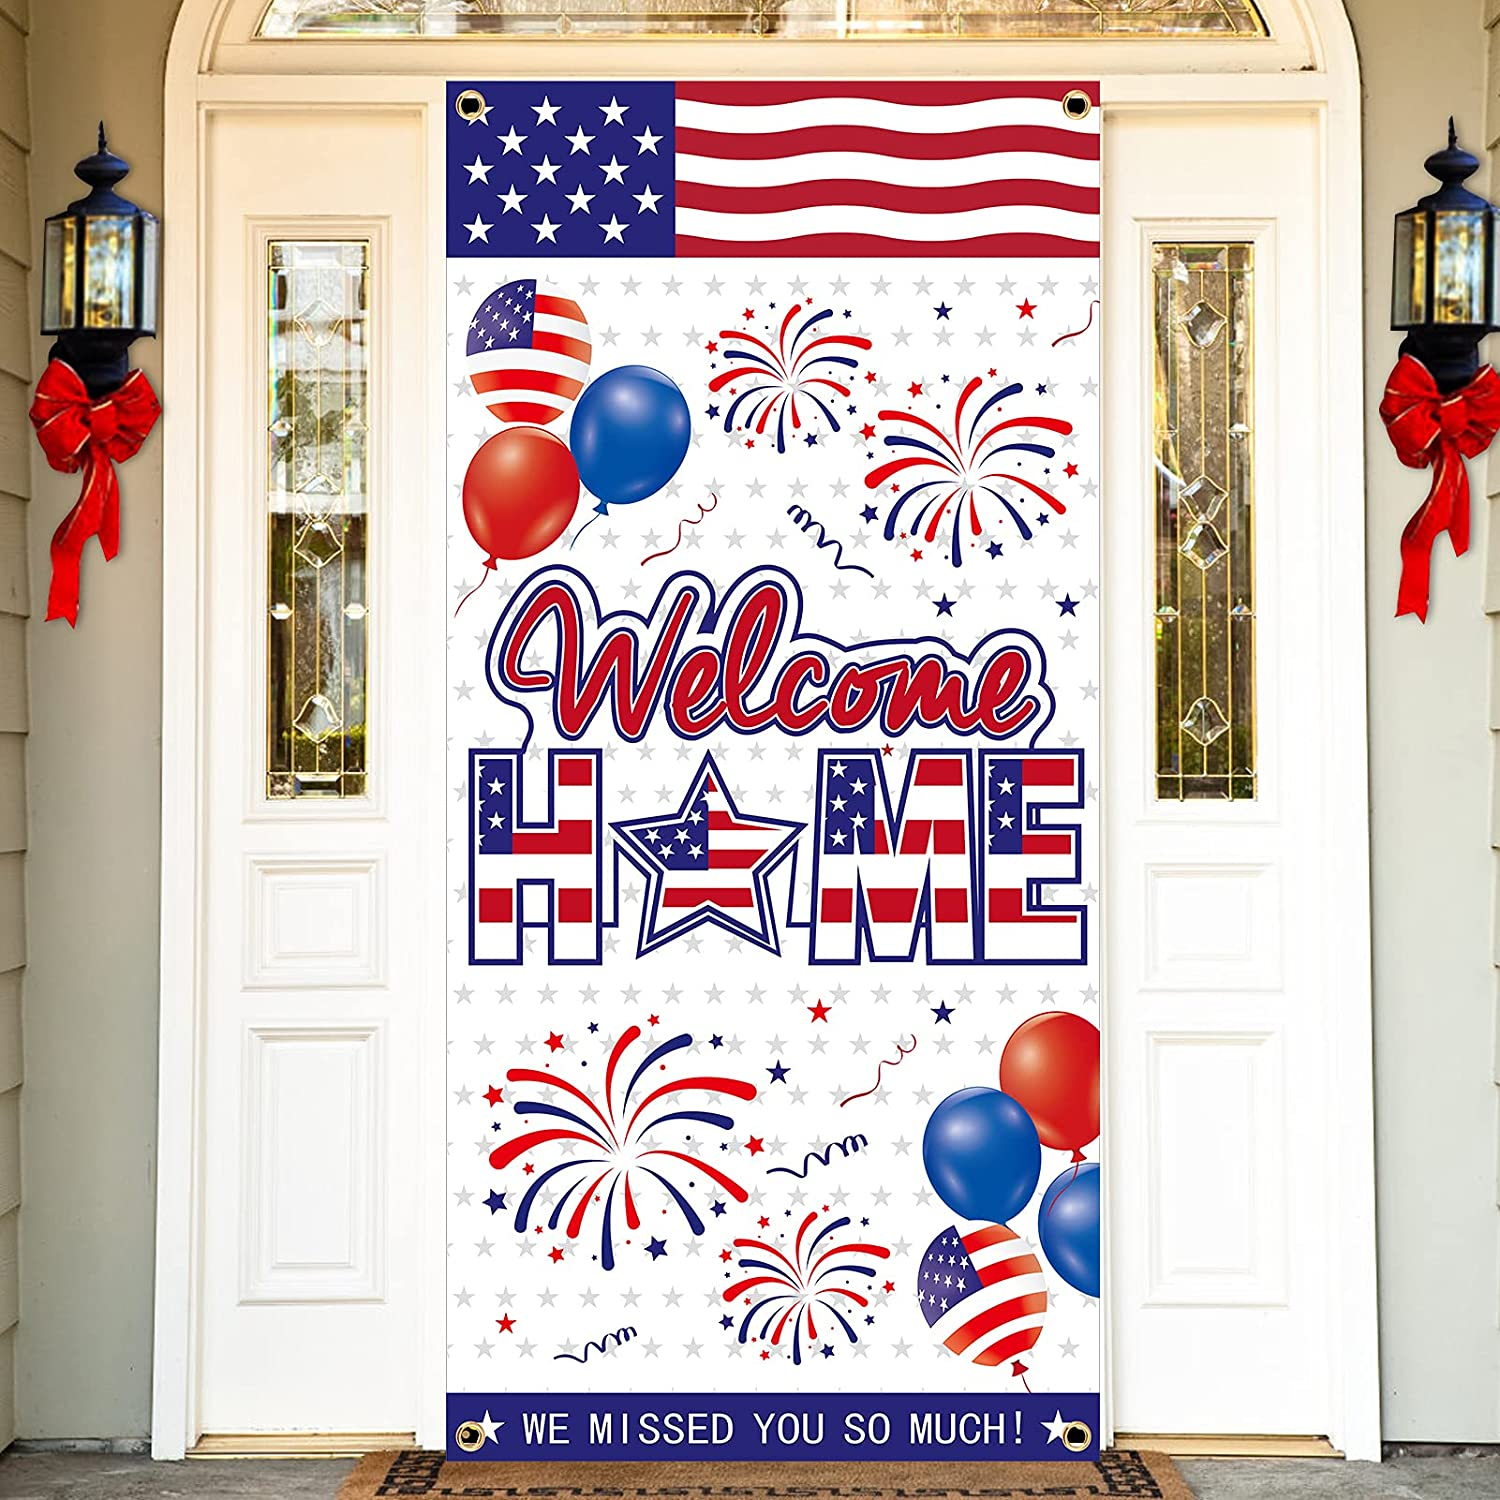 Welcome Home Door Banner Decorations, Patriotic Party Deployment Returning Door Cover Sign Supplies, Military Army Homecoming Party Door Backdrop Décor